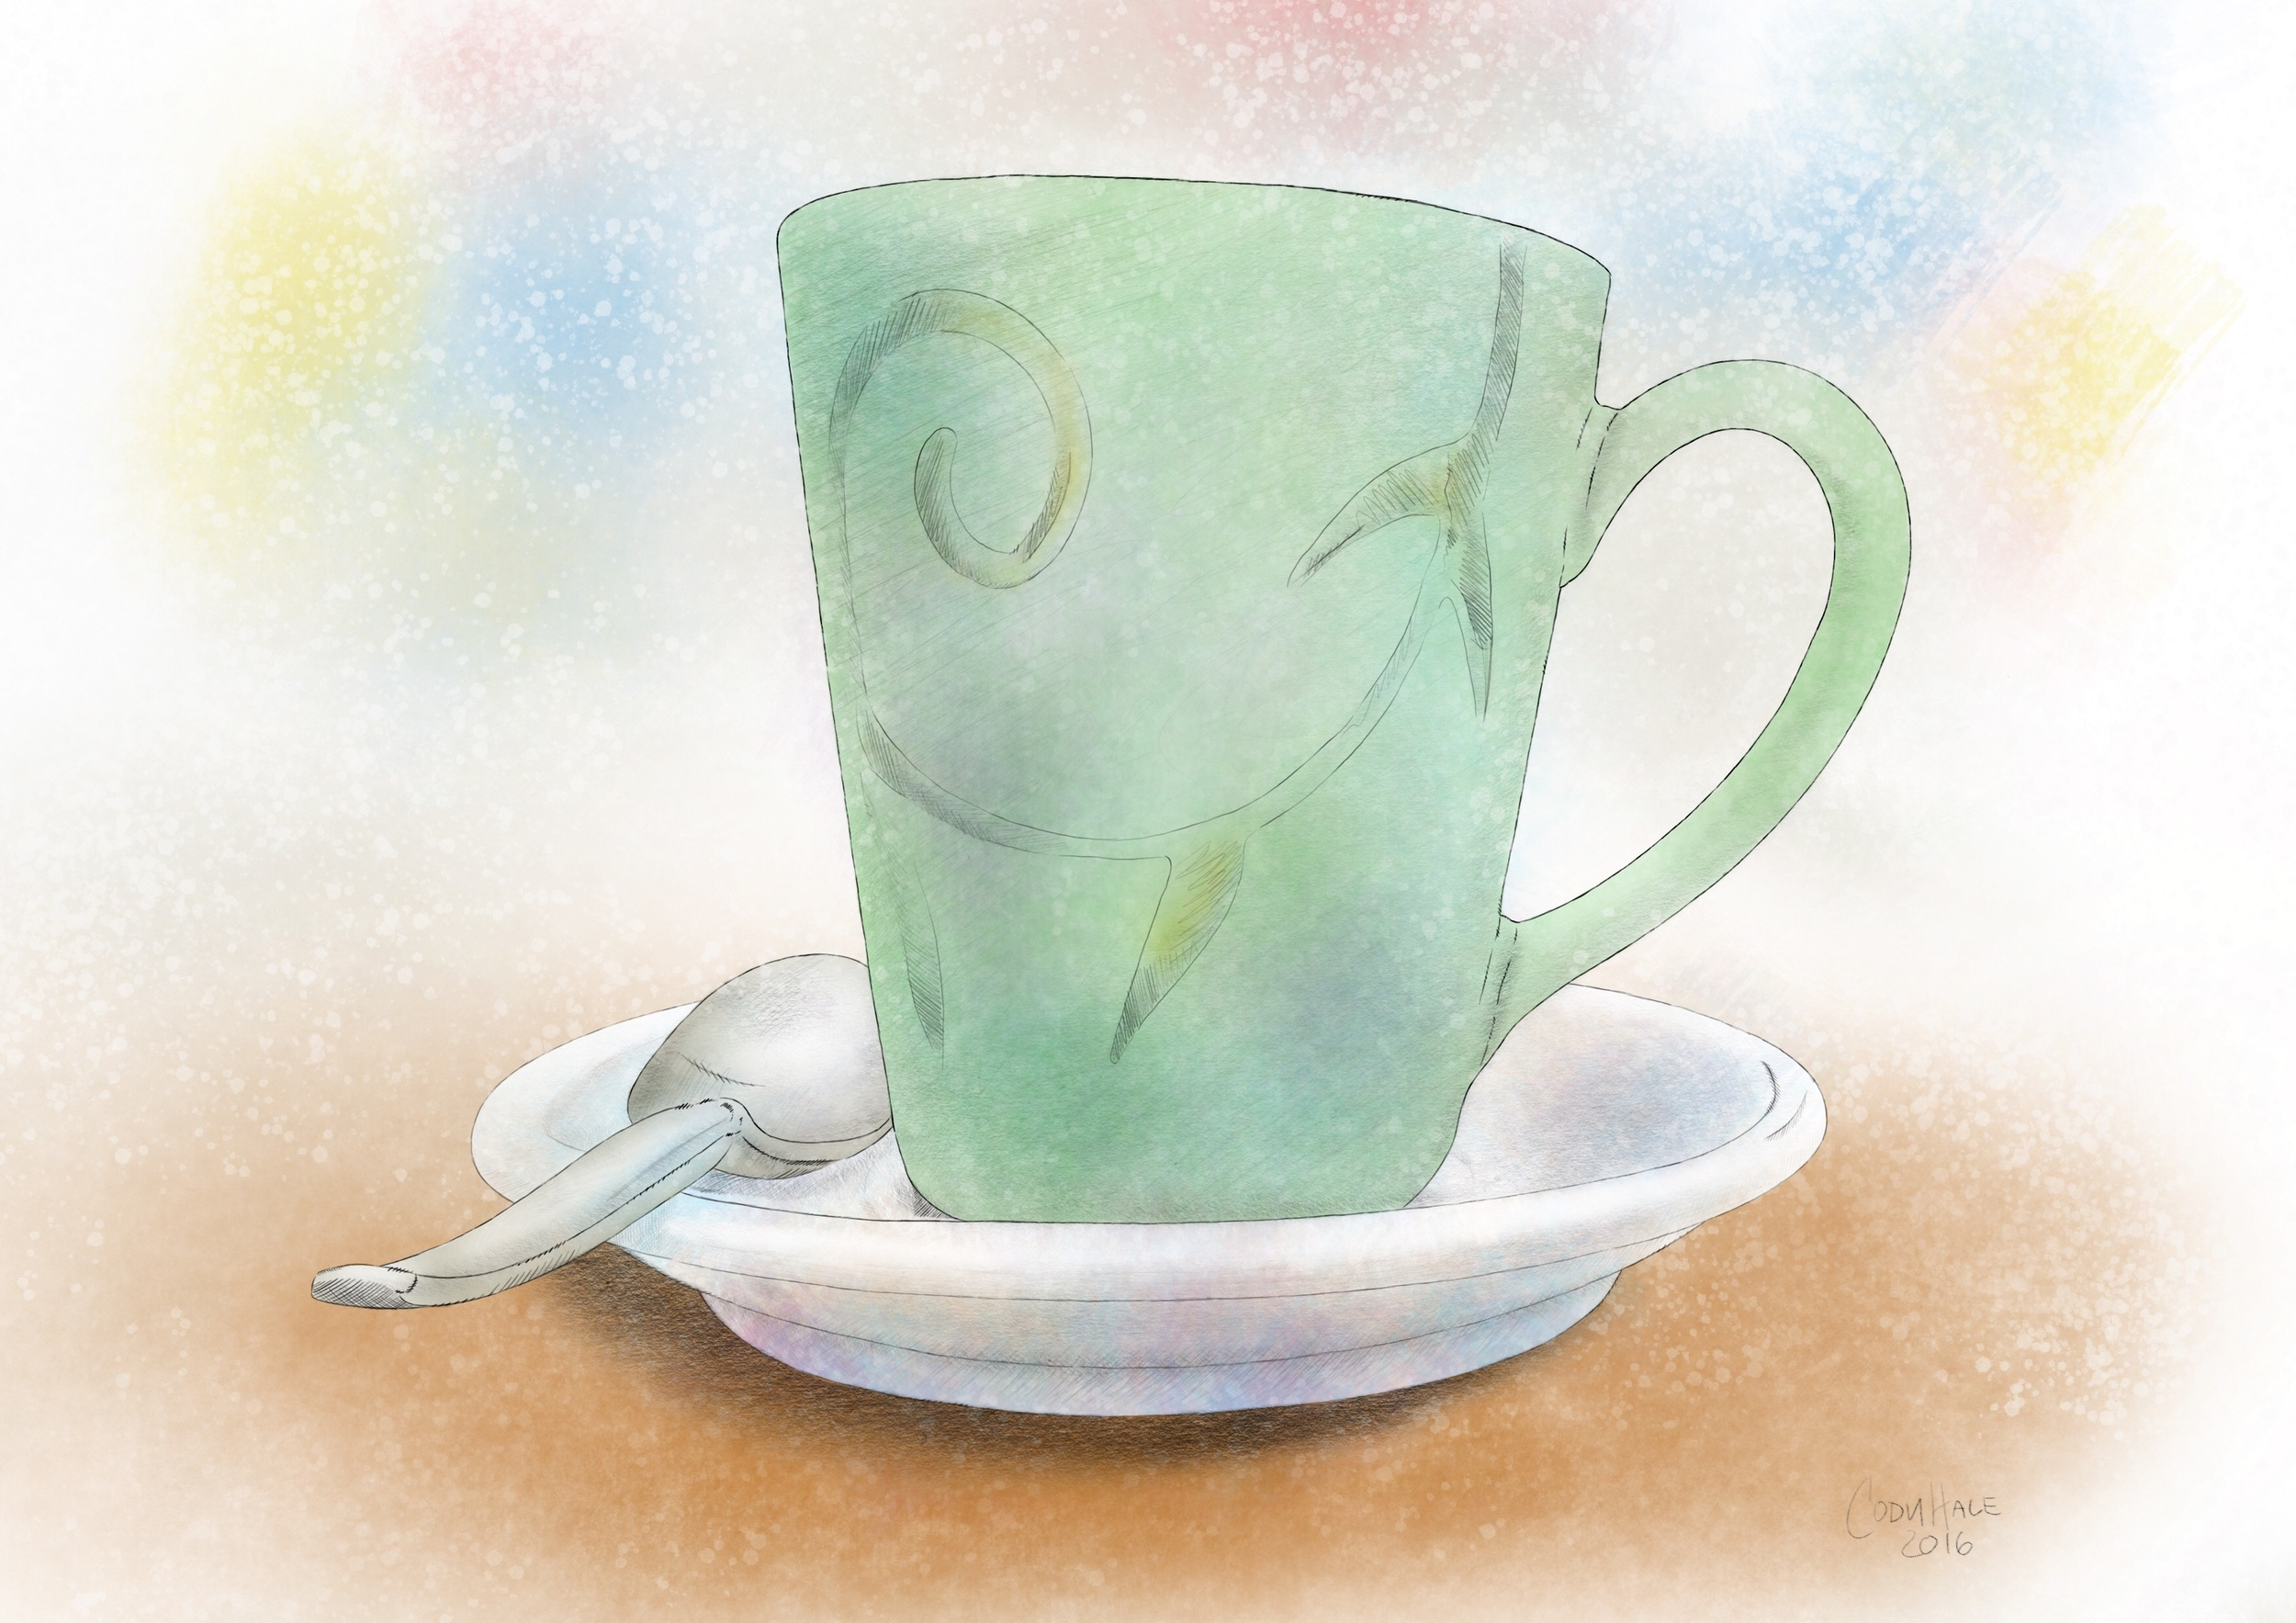 Illustration of coffe mug from Carpe Cafe